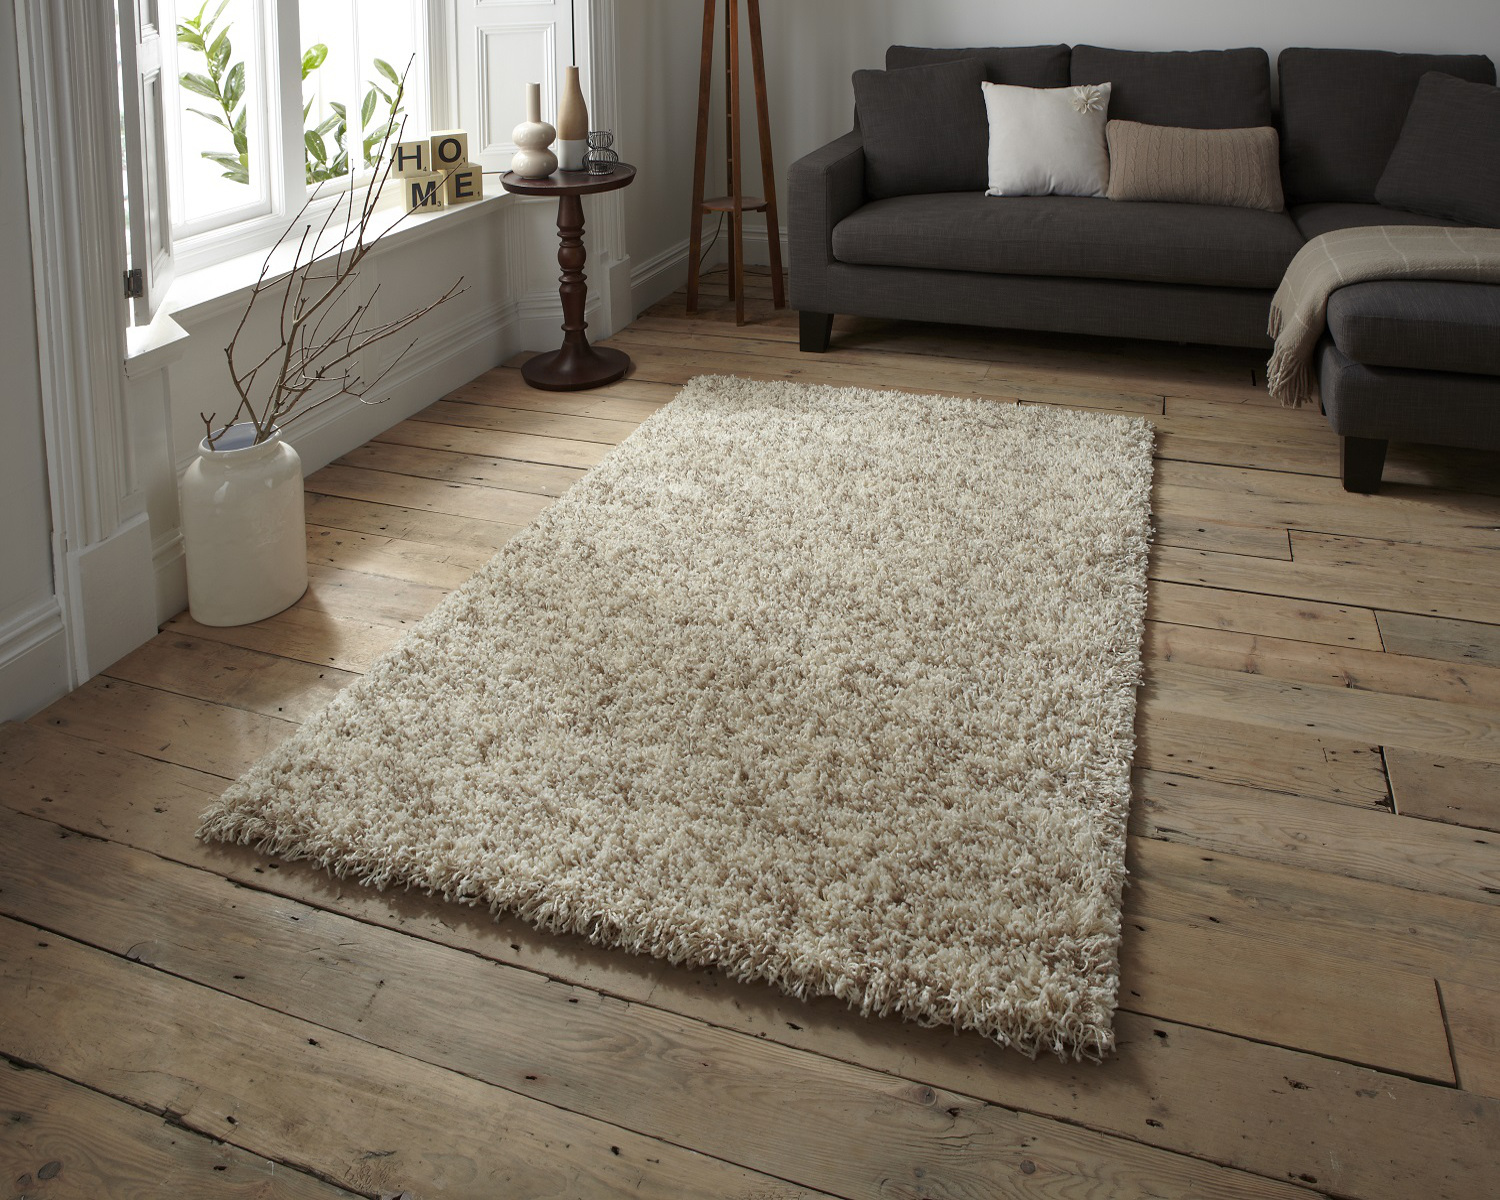 Portico Alfombras Vista Cream Shaggy Pile Rug Machine Made 100